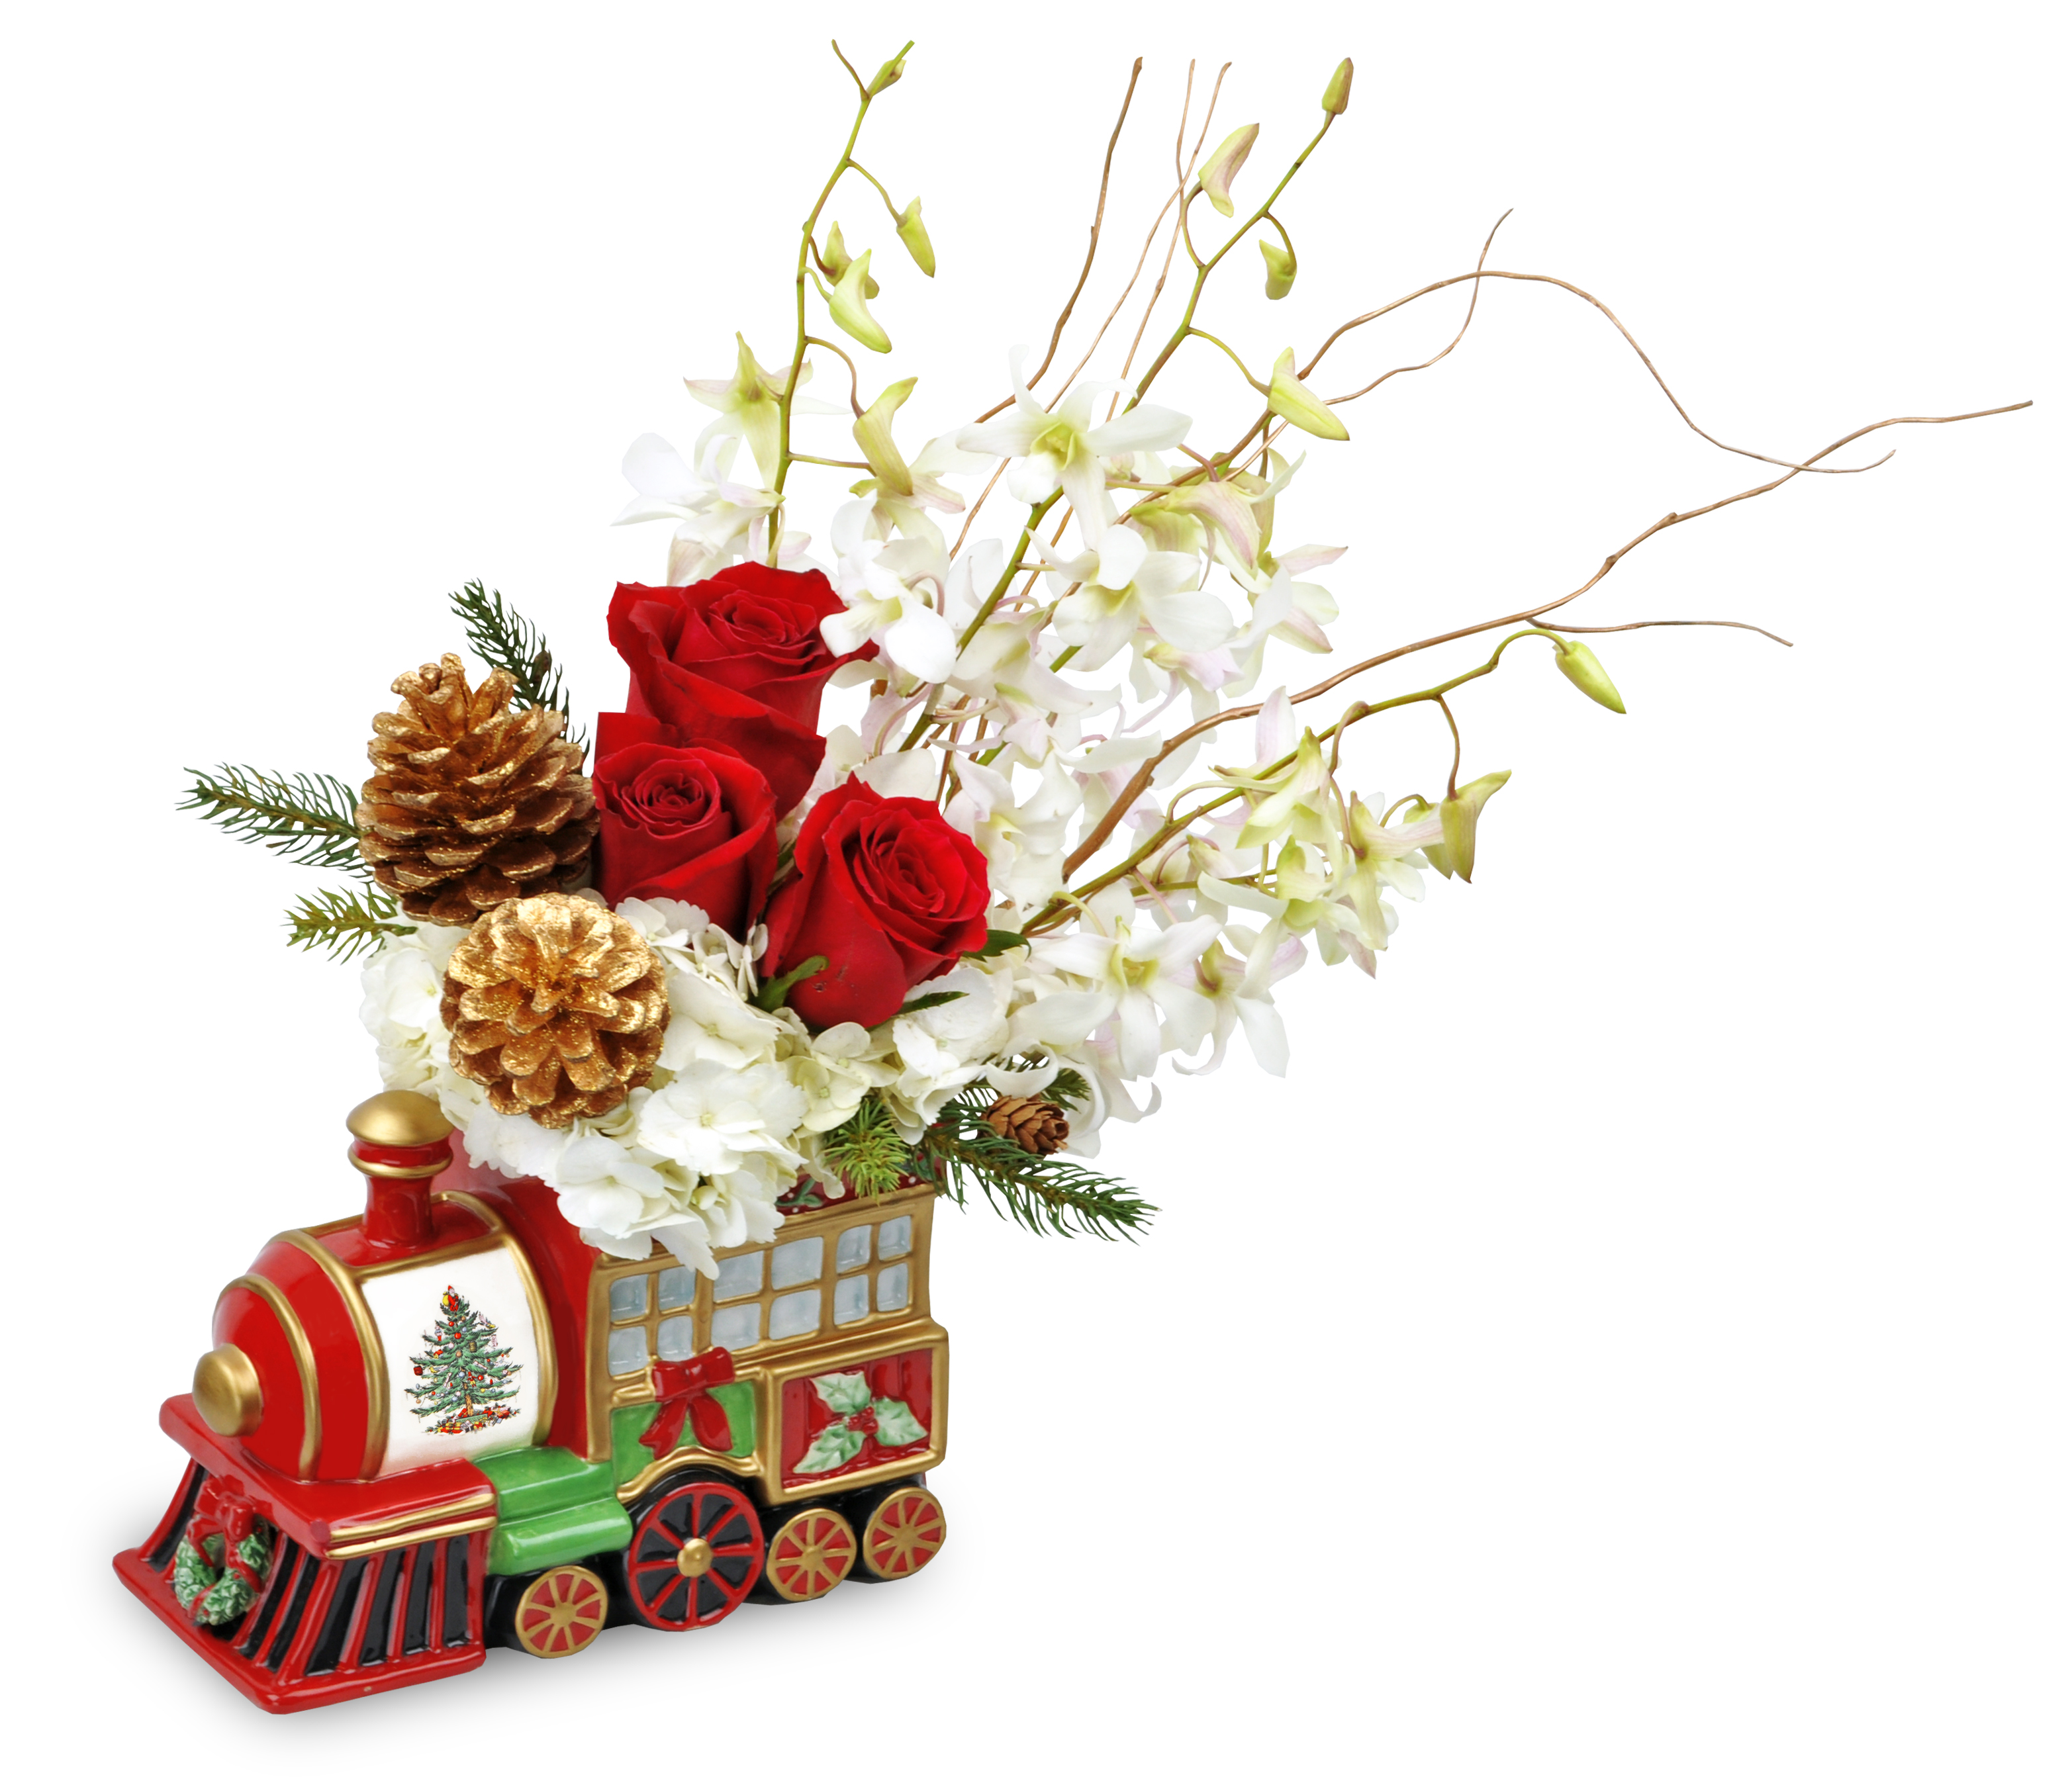 Beneva Flowers & Gifts Creates Lasting Relationships With the Spode Holid